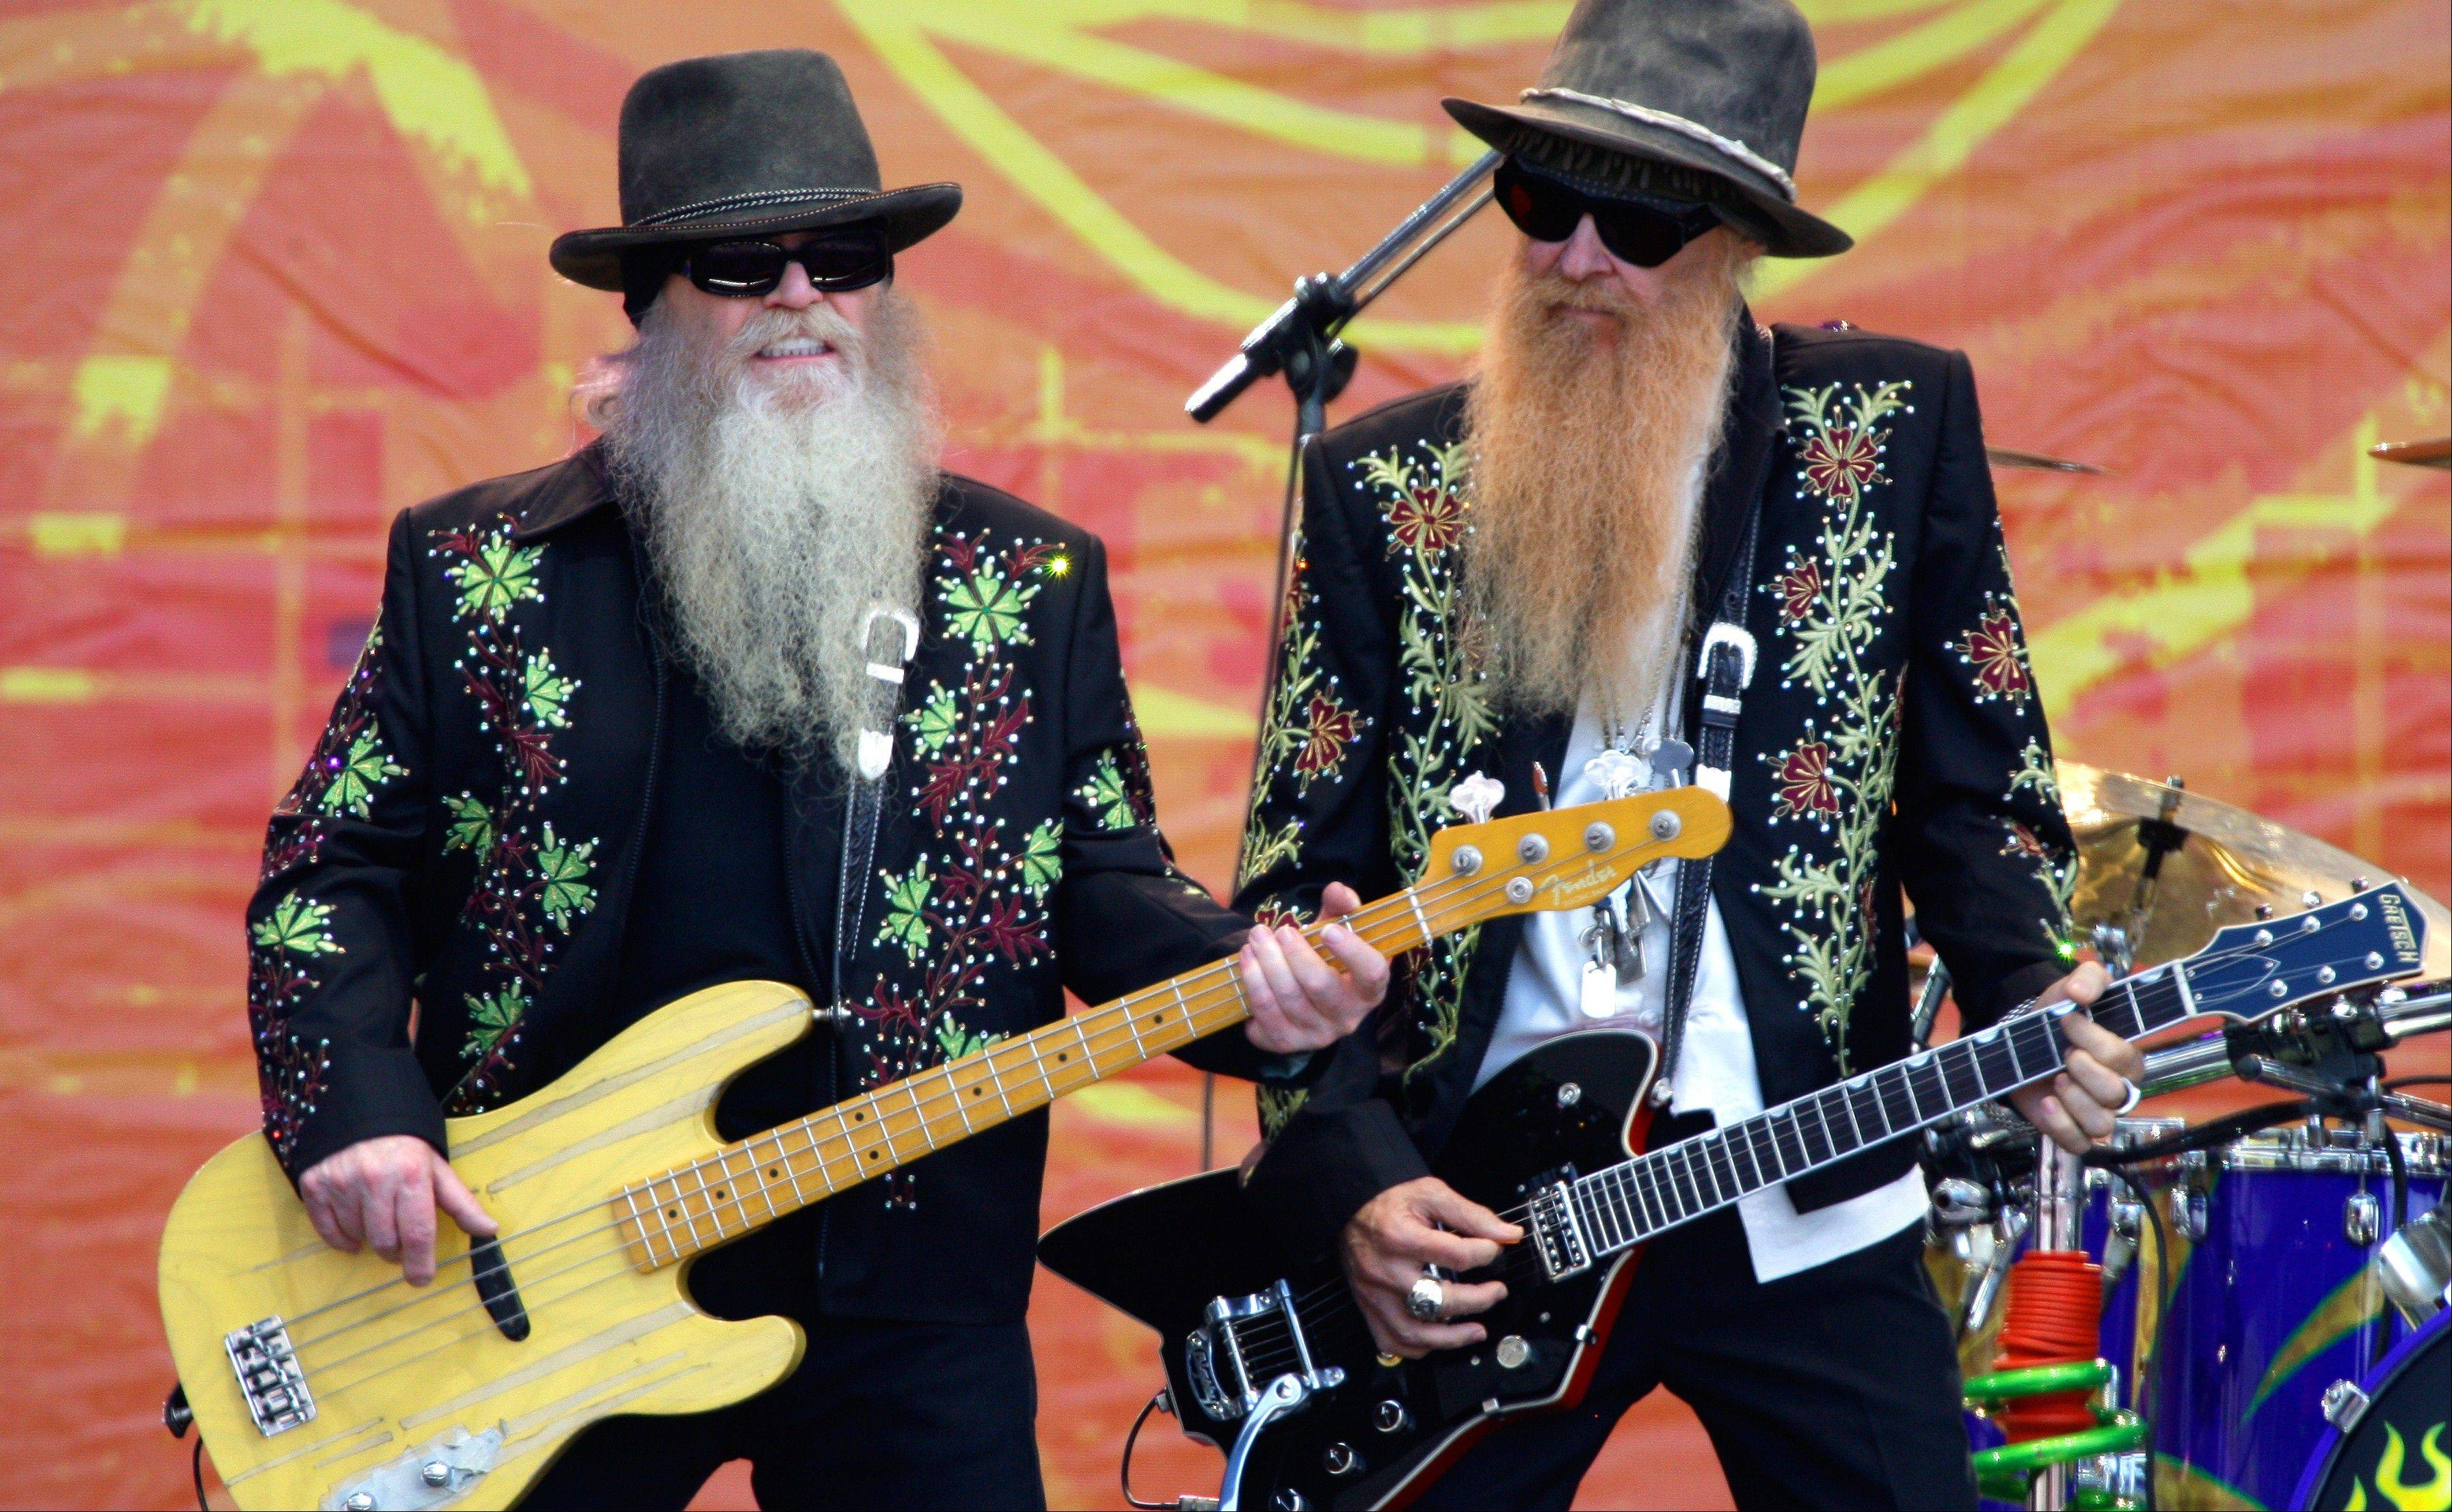 Dusty Hill, left, and Billy Gibbons of ZZ Top perform during the 2010 Crossroads Guitar Festival in Chicago.